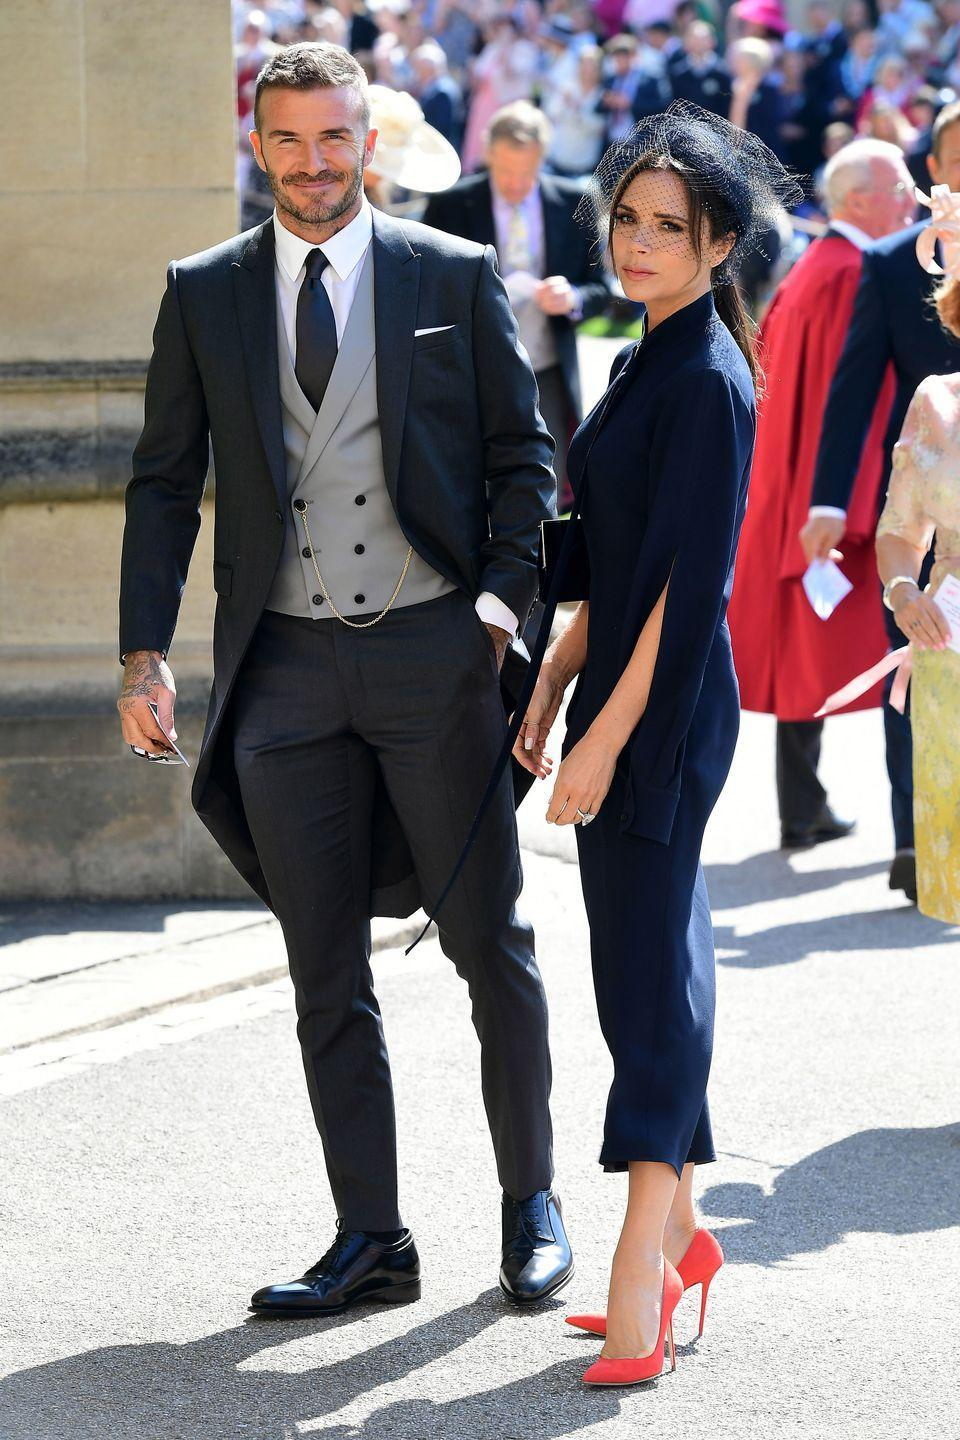 """<p>Posh and Becks sued <em>News of the World</em> for printing a story which alleged David had been cheating on his wife in 2004. The two also sued a nanny who claimed she had an affair with David, according to <a href=""""https://www.eonline.com/news/913303/how-david-and-victoria-beckham-s-marriage-survived-and-thrived-after-scandal"""" rel=""""nofollow noopener"""" target=""""_blank"""" data-ylk=""""slk:E! News"""" class=""""link rapid-noclick-resp""""><em>E! News</em></a>. Despite the rumors and claims of David's infidelity, the two are still going strong.</p>"""